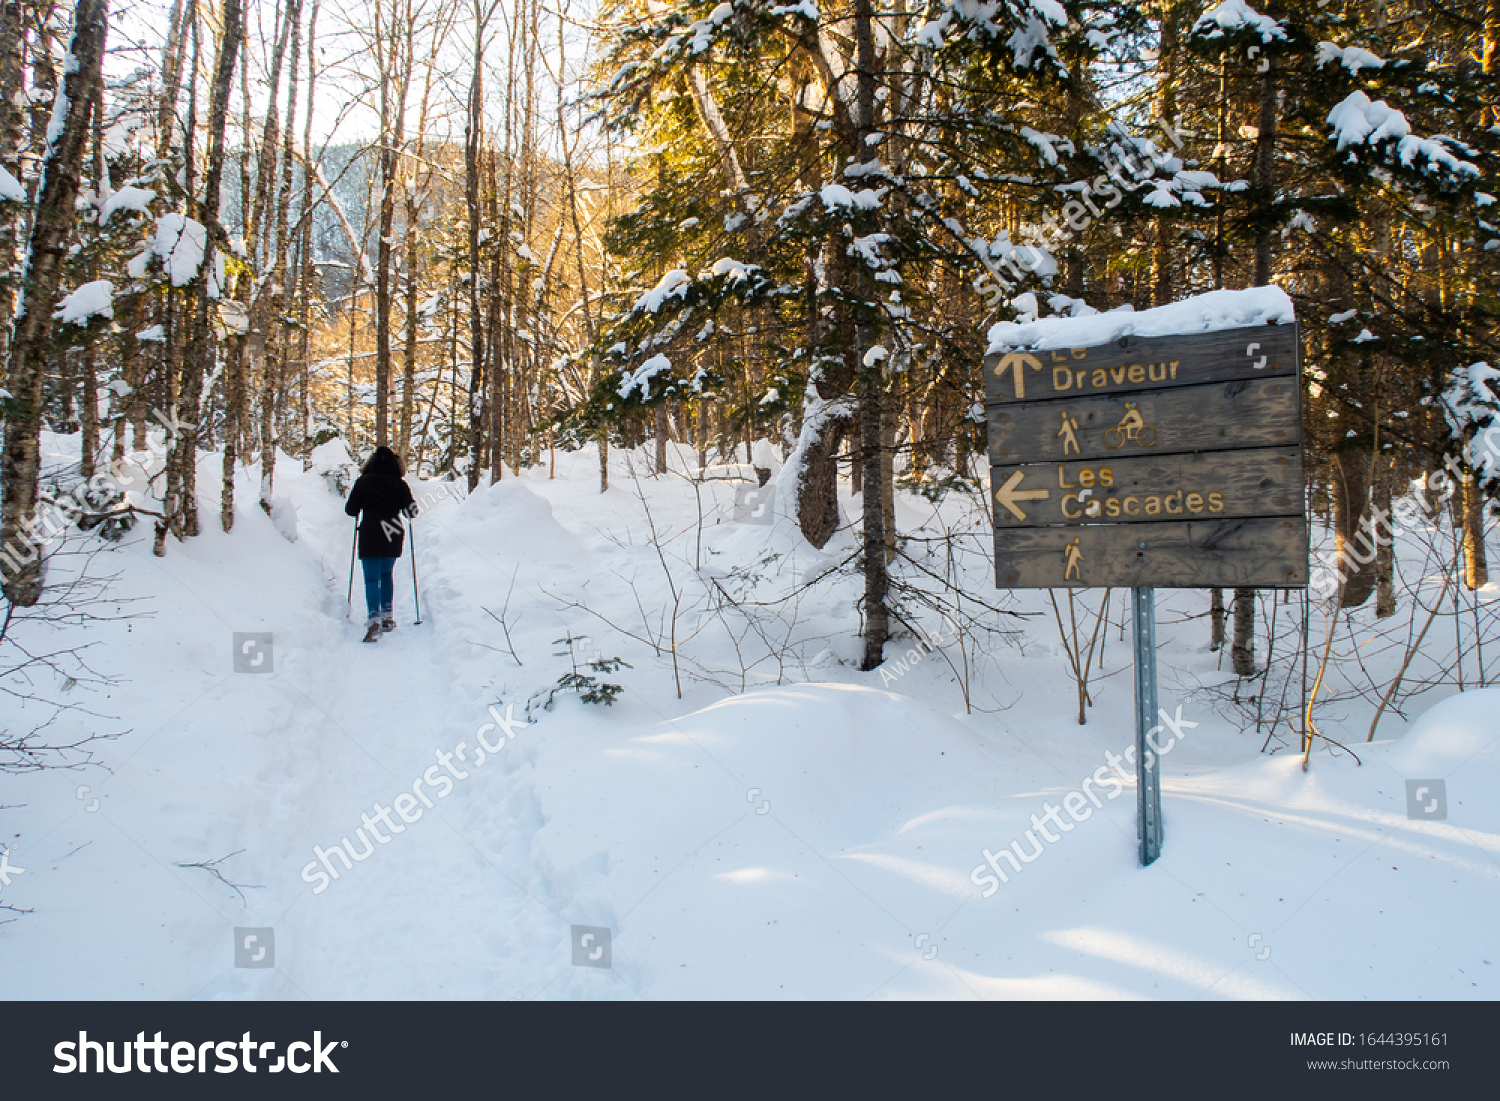 stock-photo-woman-walking-in-the-snow-wi